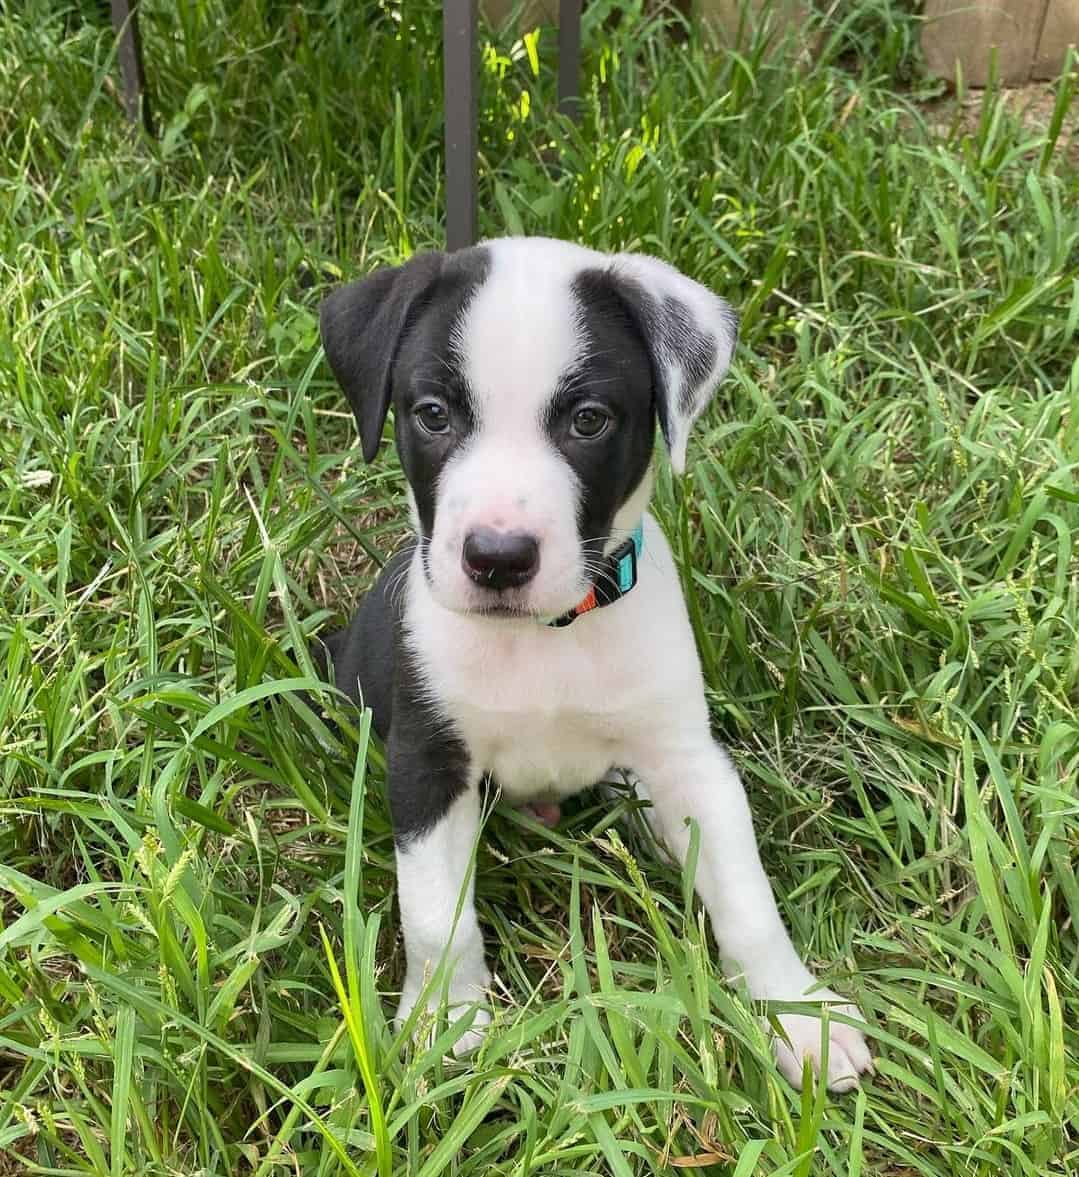 Black and white Pitbull puppy sitting on the grass